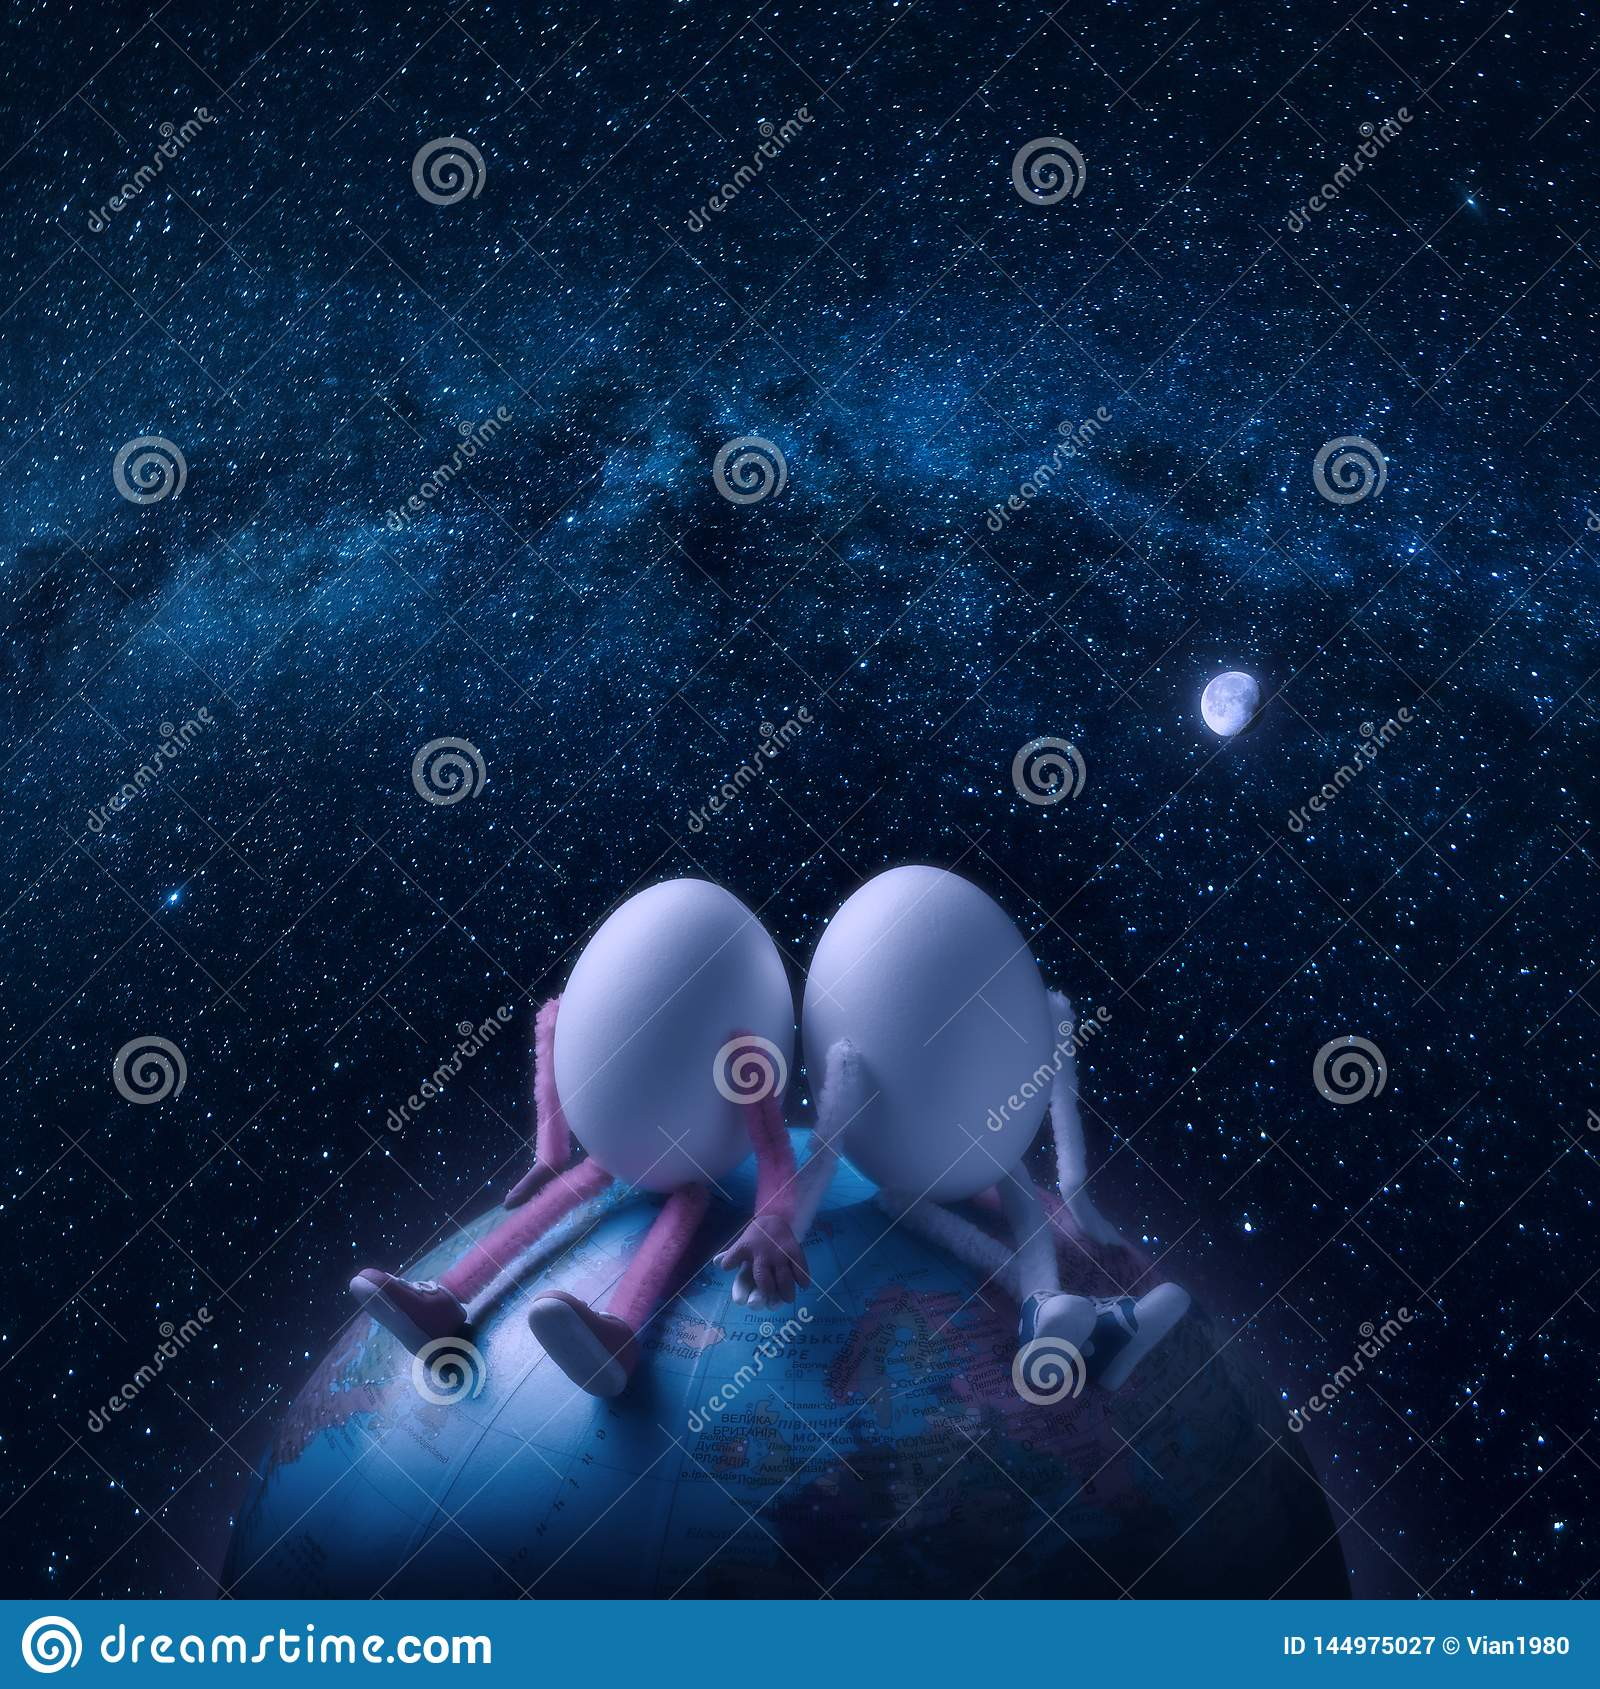 Couple of eggs in outer space